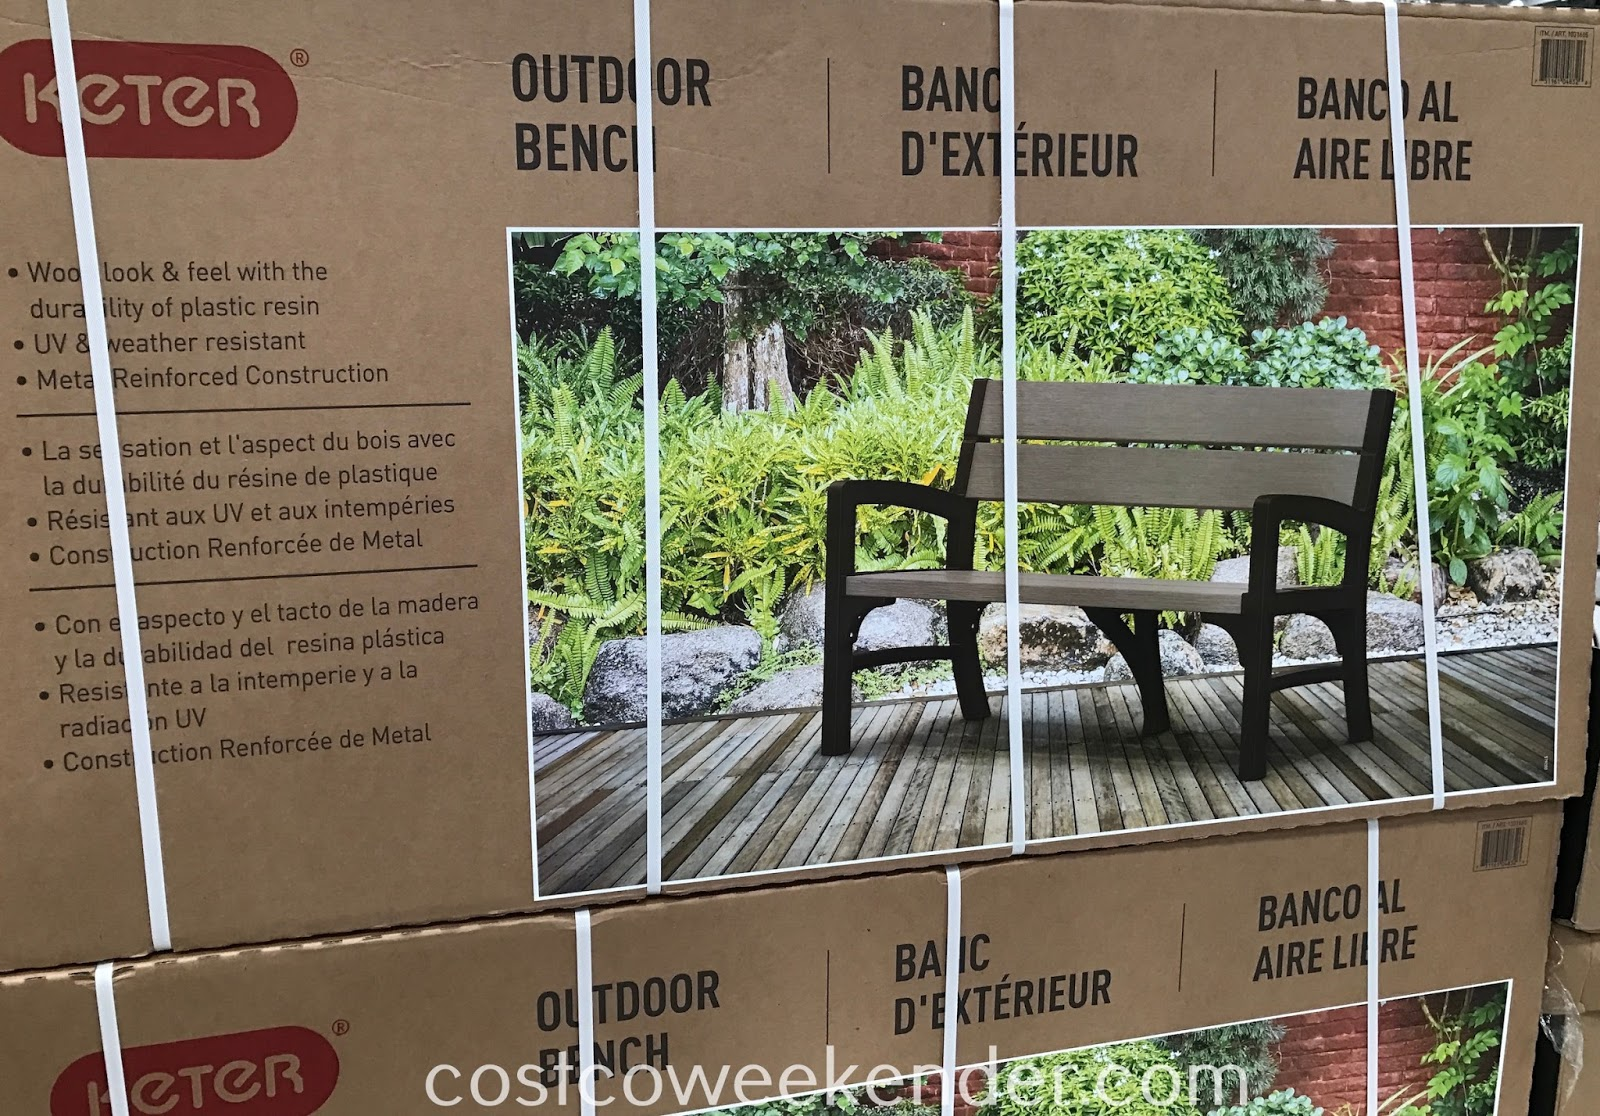 Costco 1031665 - Keter Outdoor Bench: great for any backyard or patio